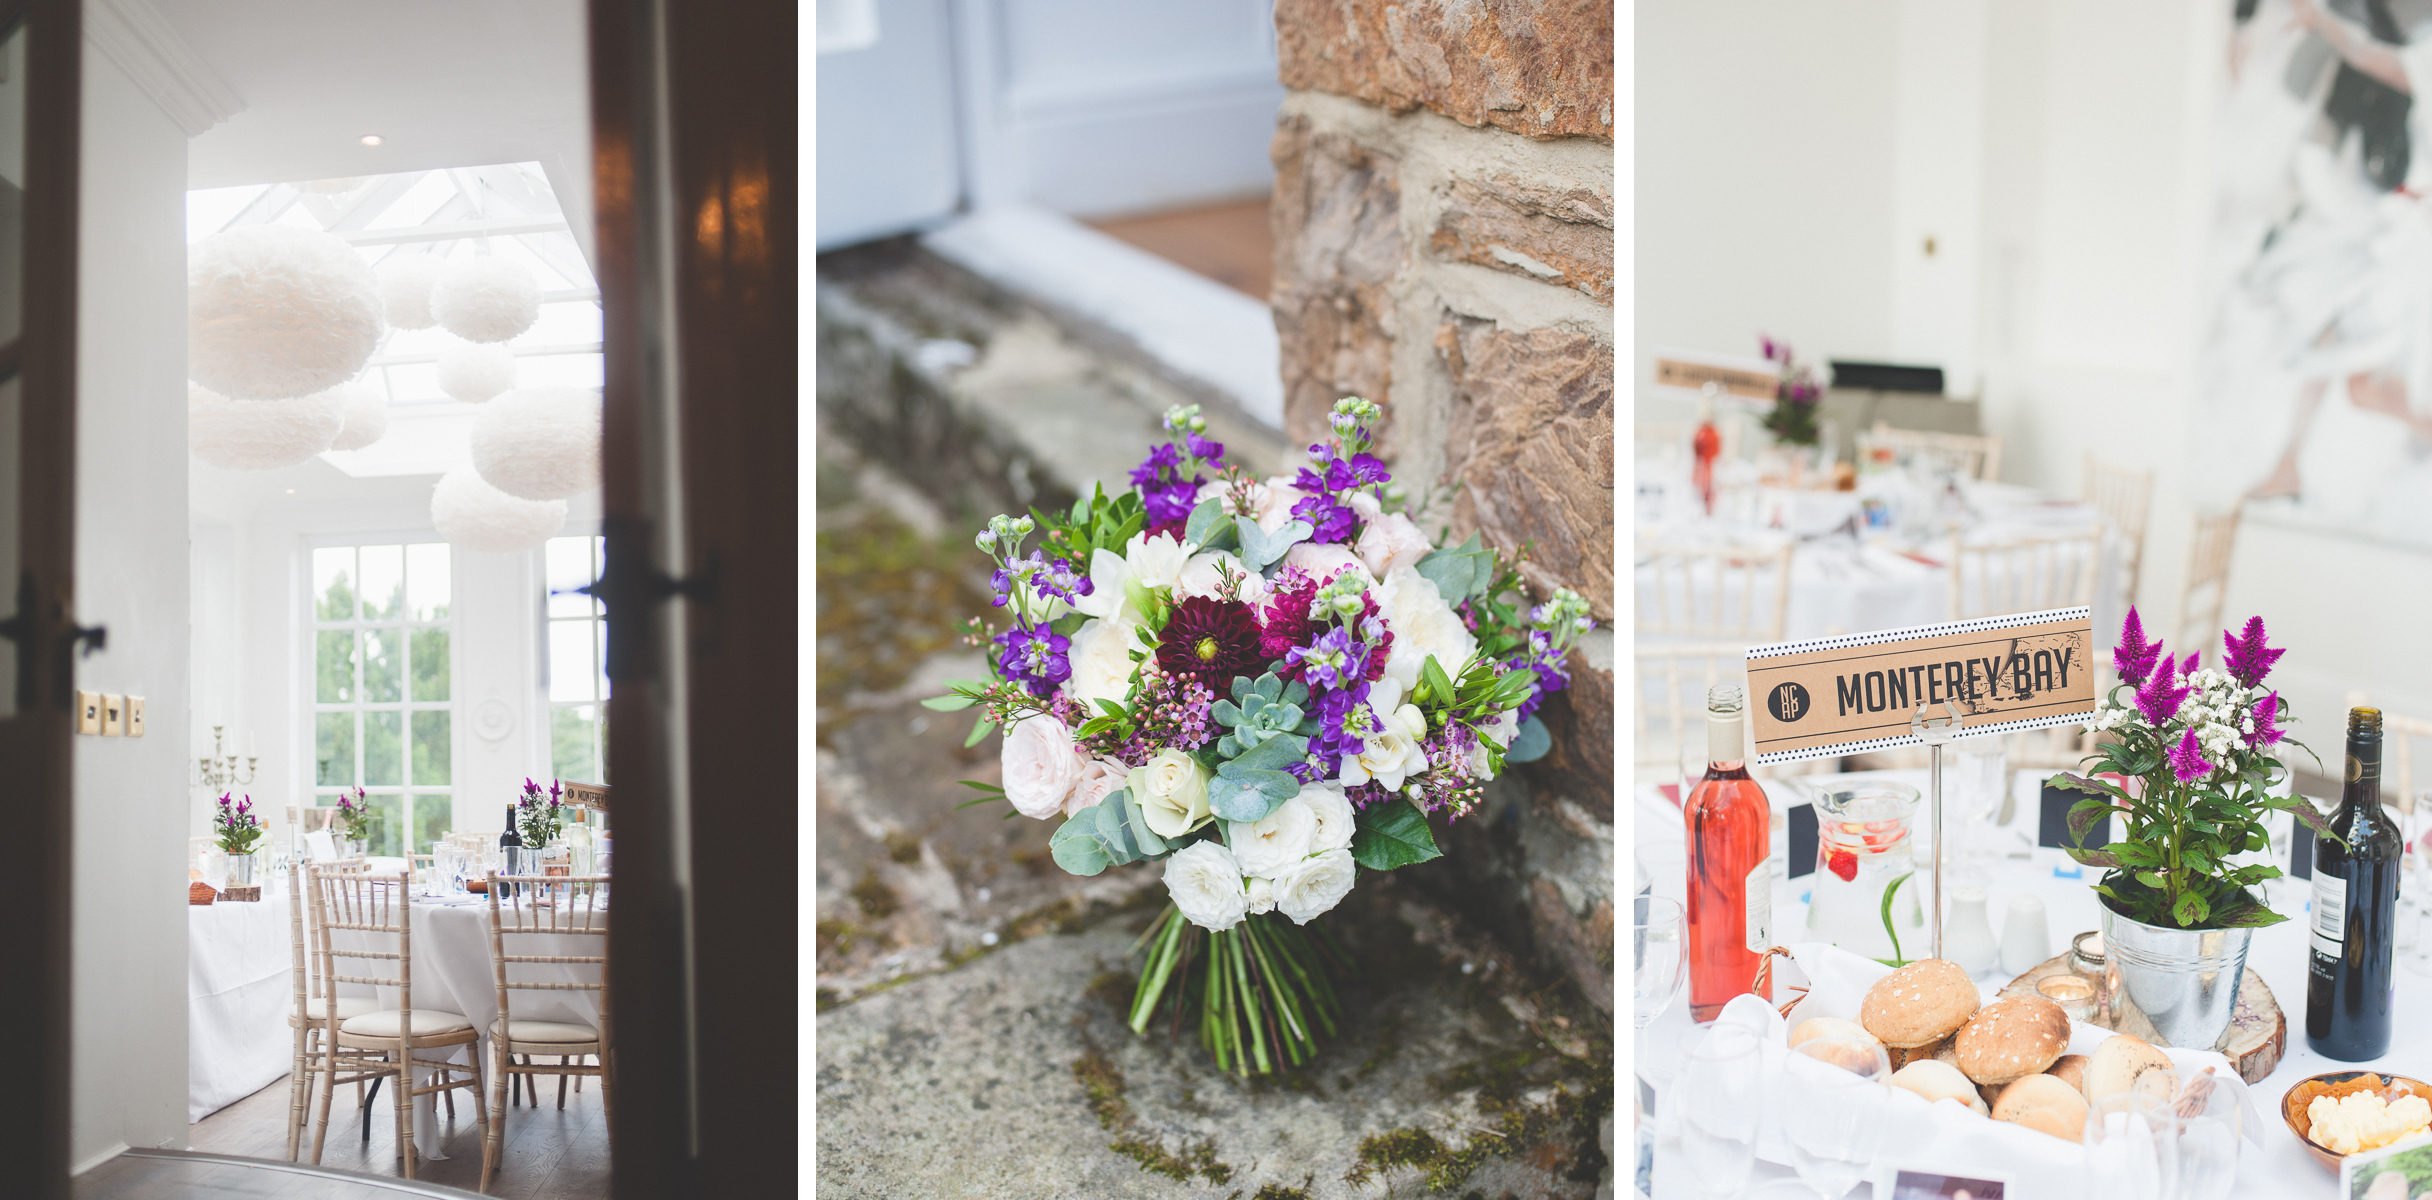 Bridal Flowers North East : Wedding flowers north east photographer from